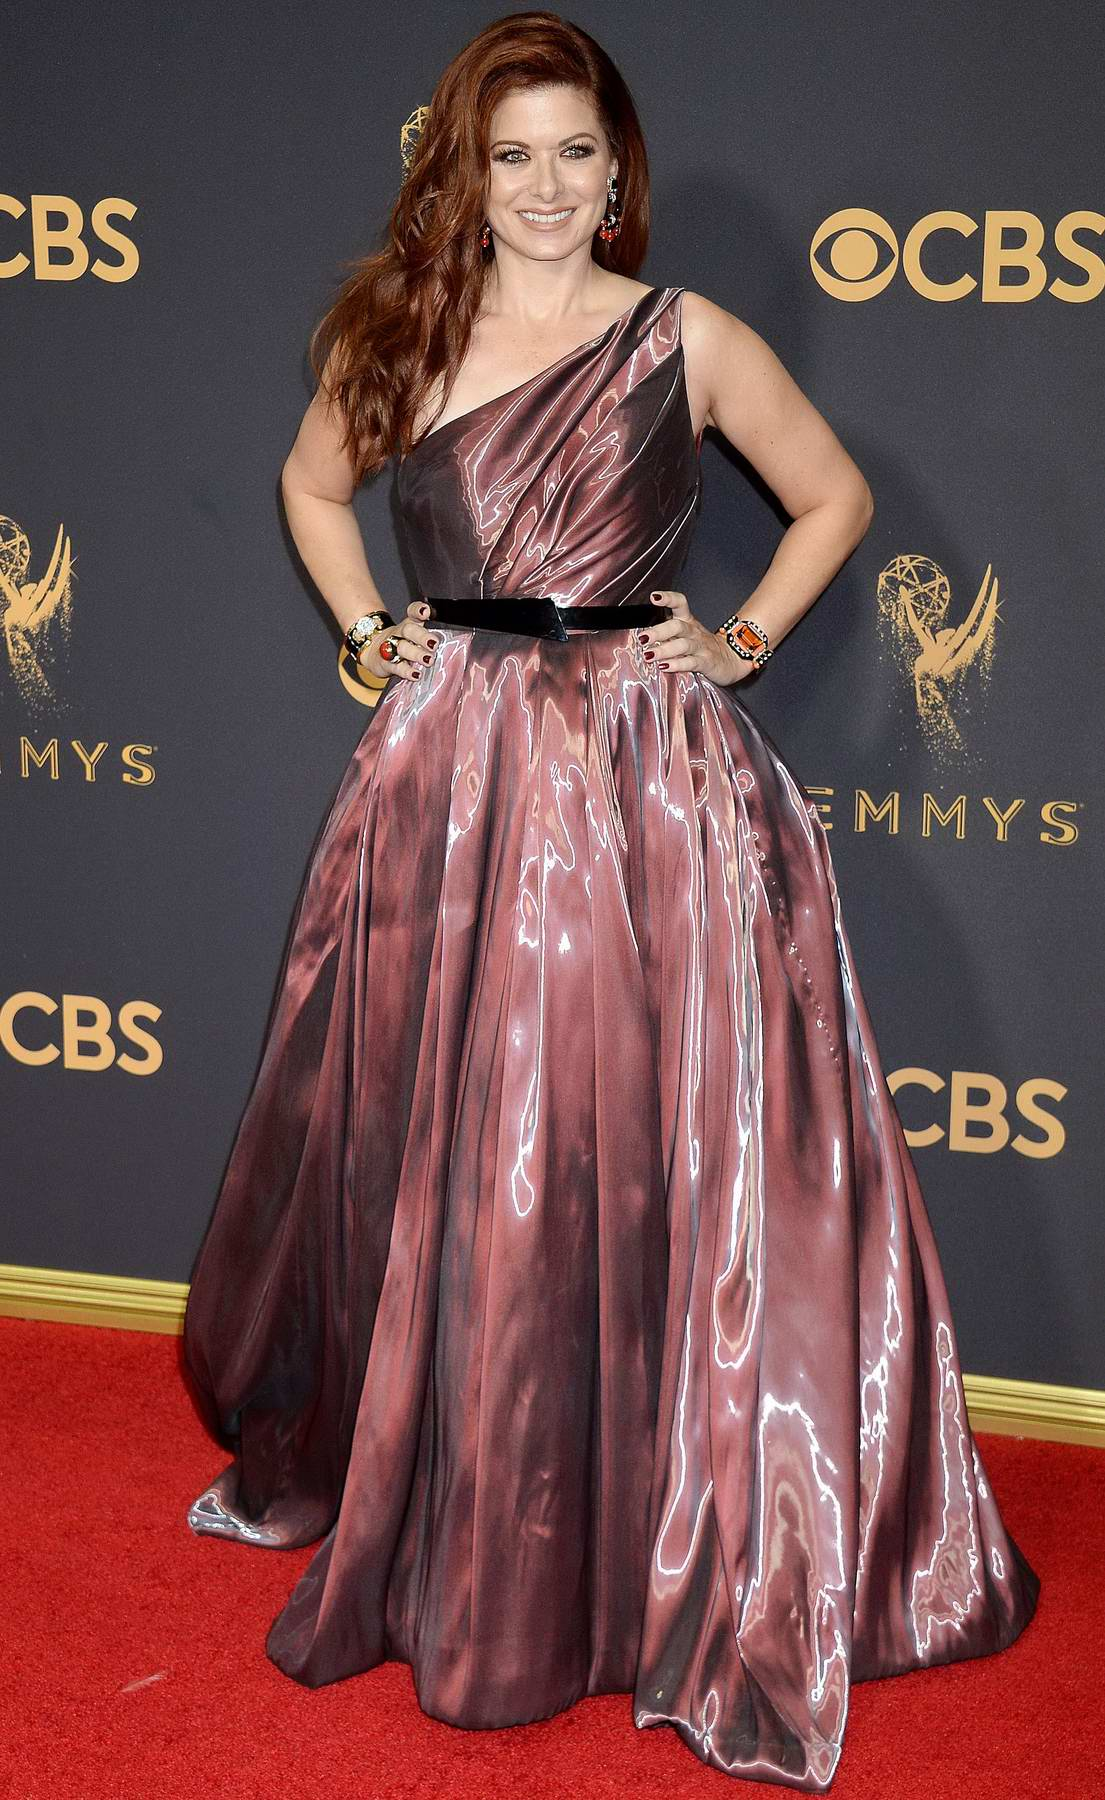 Debra Messing at 69th Annual Primetime EMMY Awards held at Microsoft Theater in Los Angeles